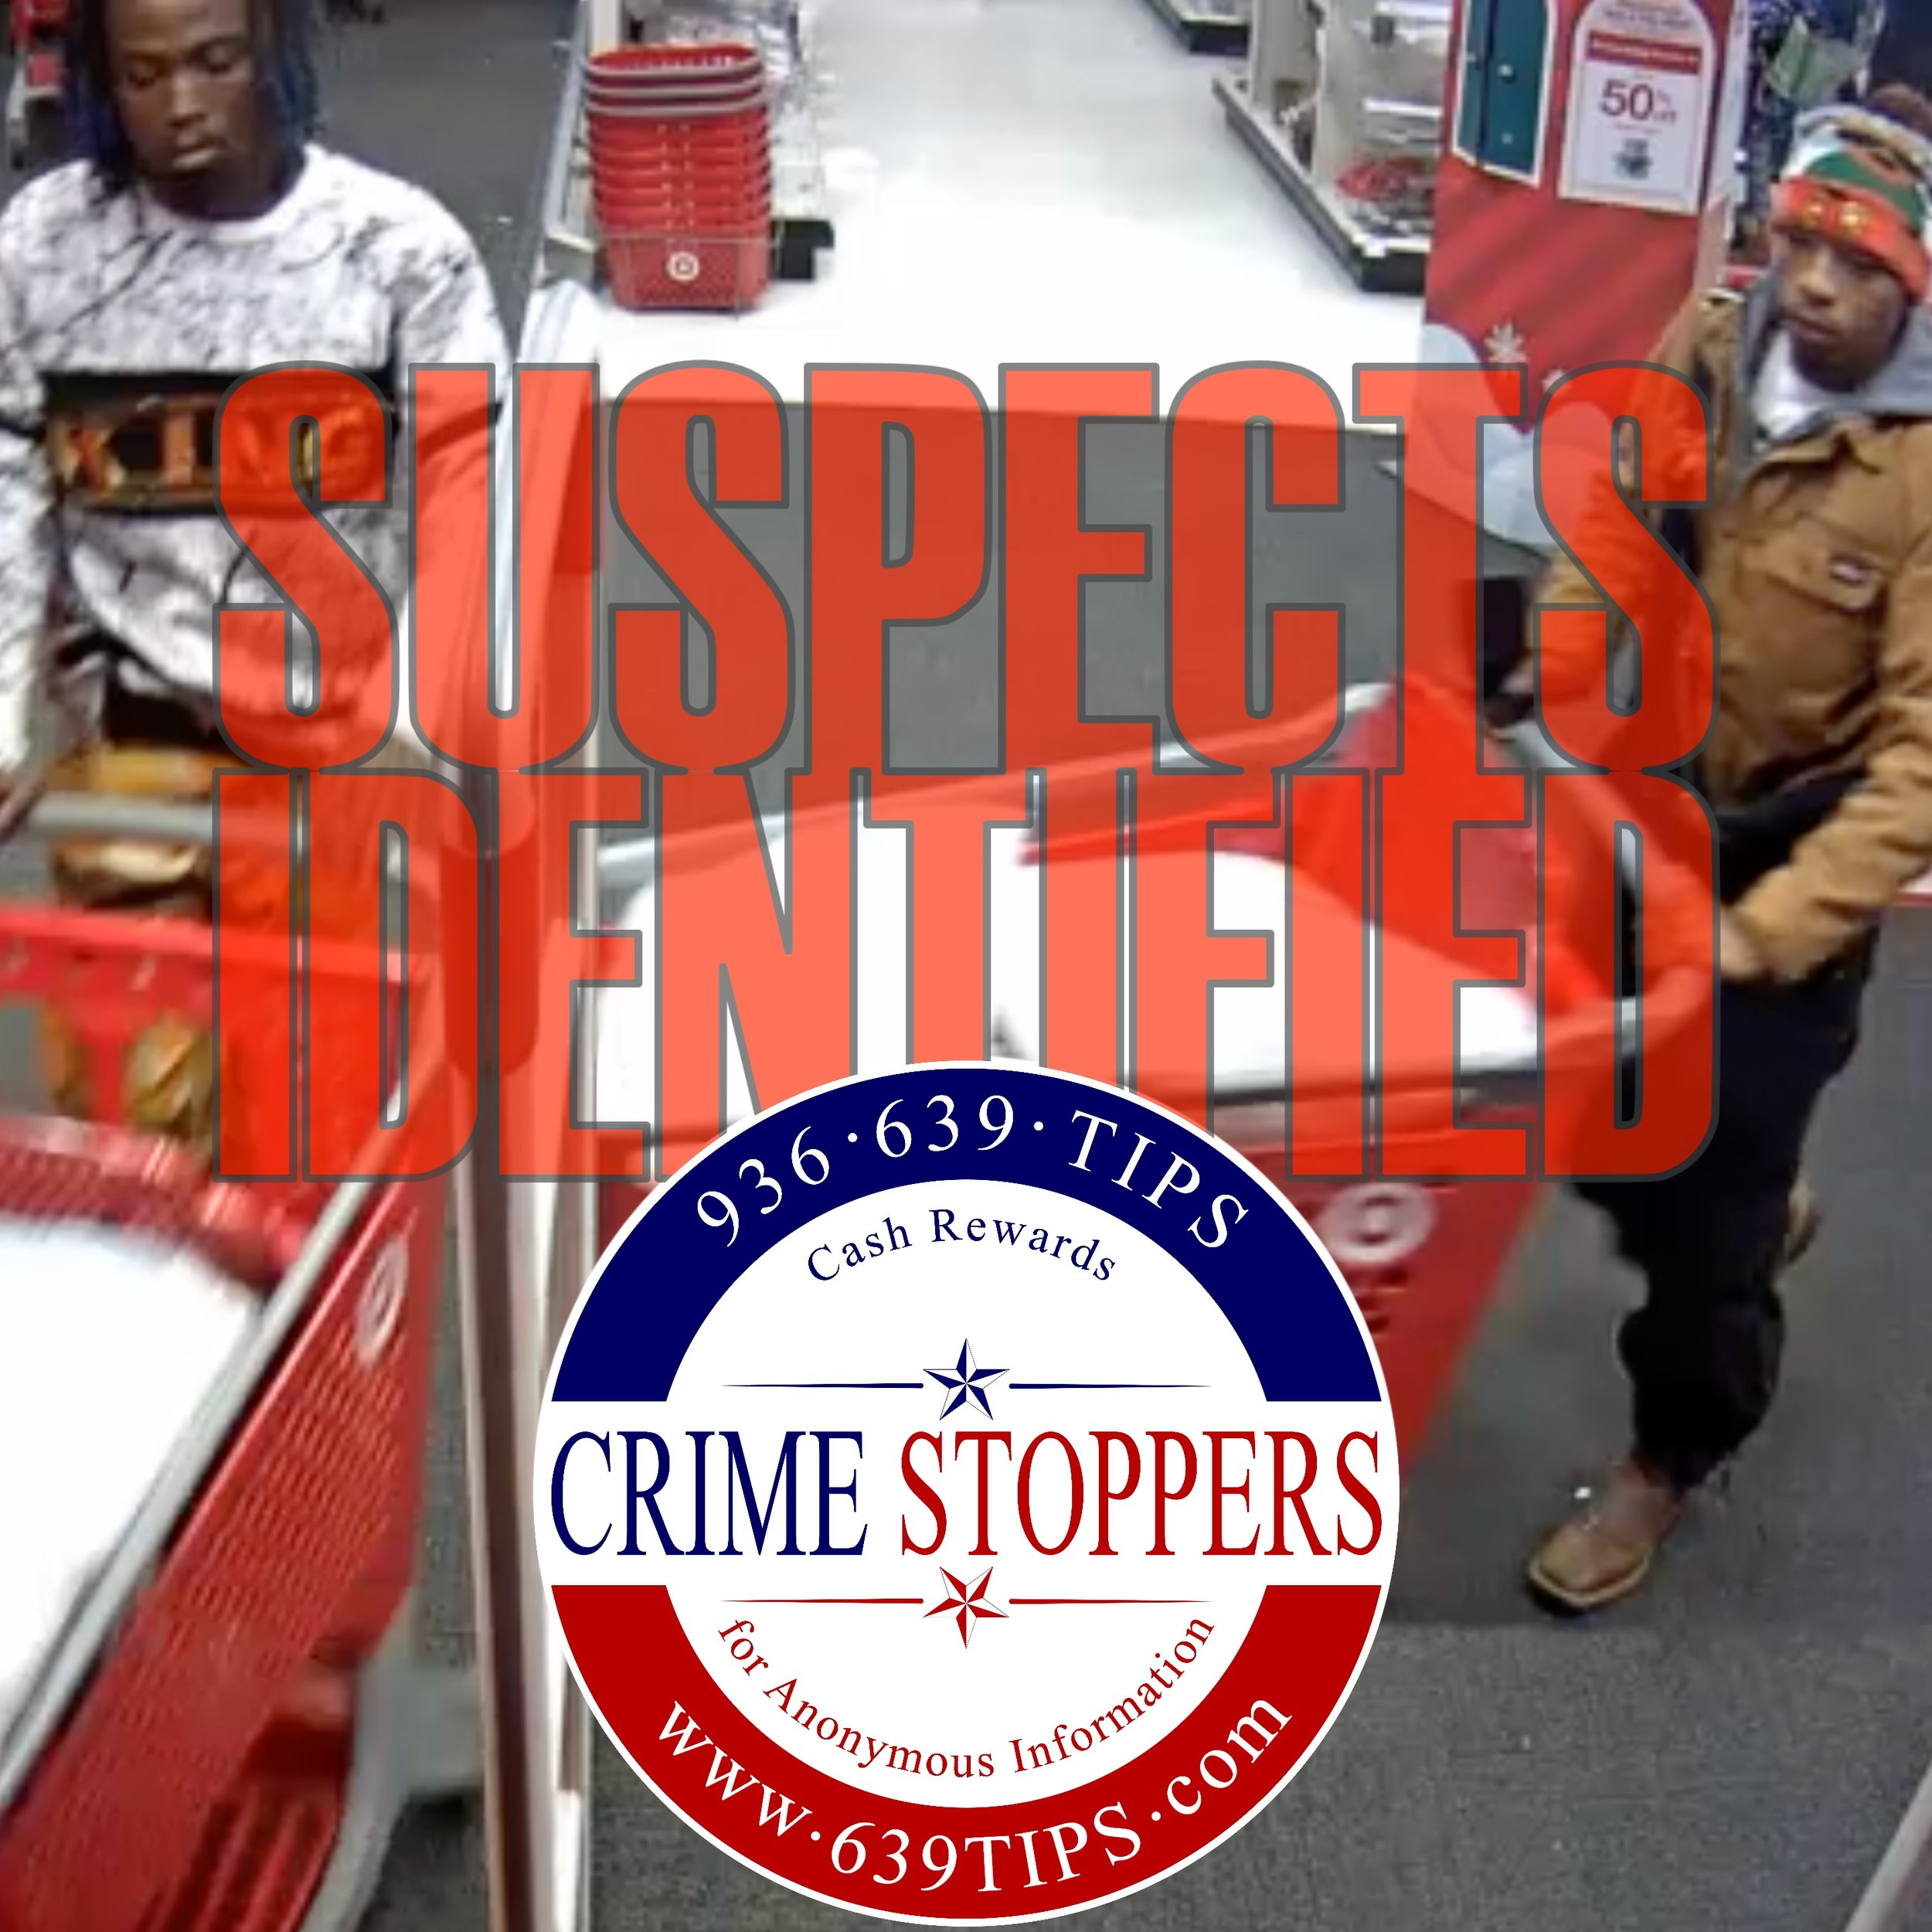 Crime of the Week 20190415 Suspects Identified.jpg